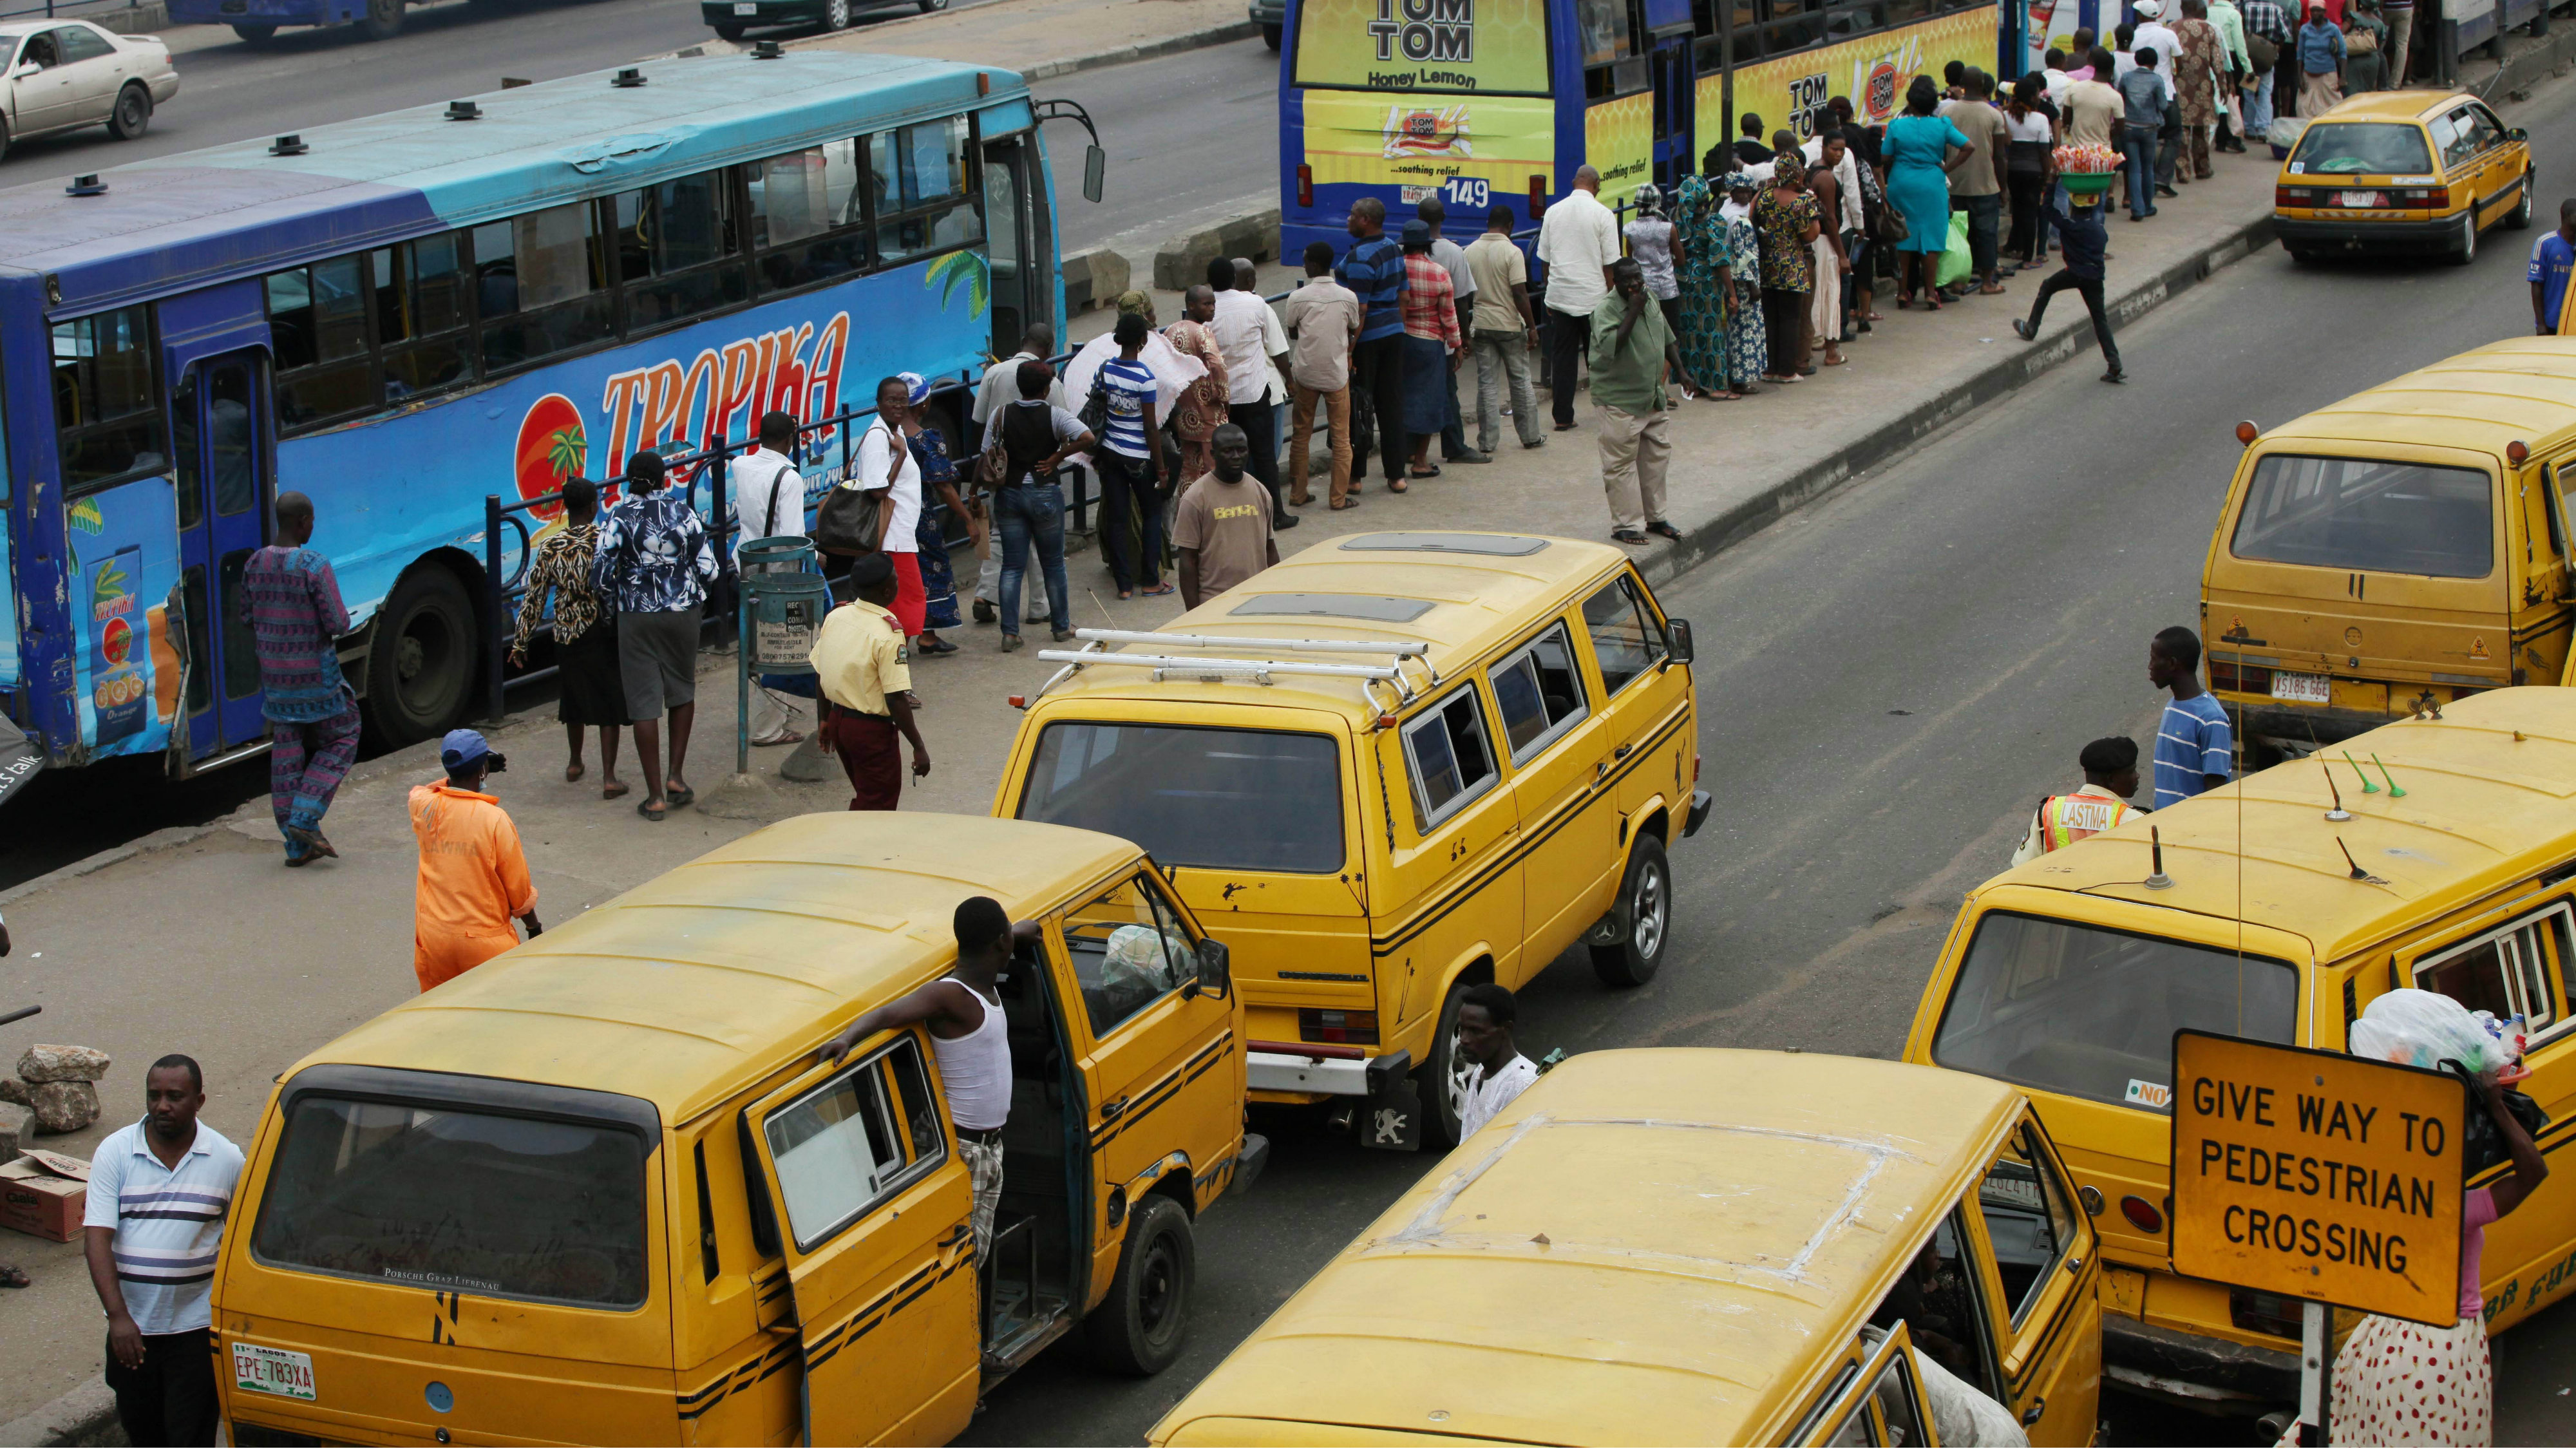 ADVANCE FOR USE MONDAY, OCT. 1, 2012 AND THEREAFTER - In this Wednesday, Aug. 15, 2012 photo, a long line of people waits to board a bus in Lagos, Nigeria. (AP Photo/Sunday Alamba)